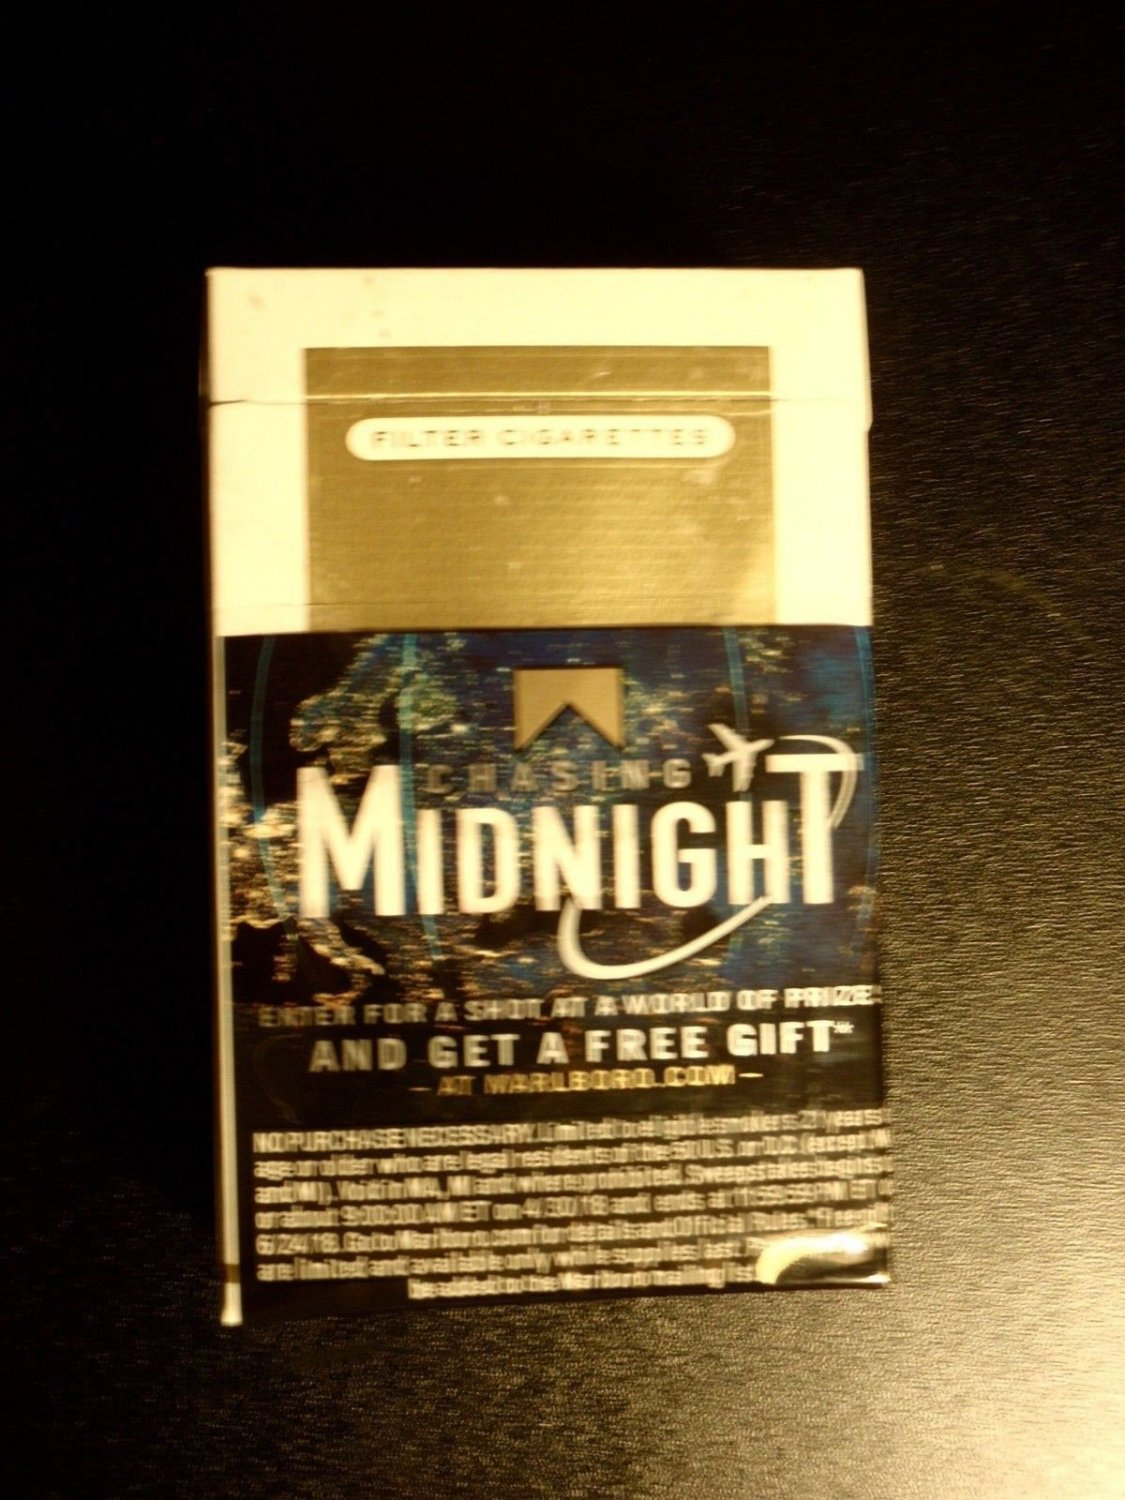 EMPTY CIGARETTE BOX EMPTY PACK USA MARLBORO GOLD CHASING MIDNIGHT Virginia tax stamp